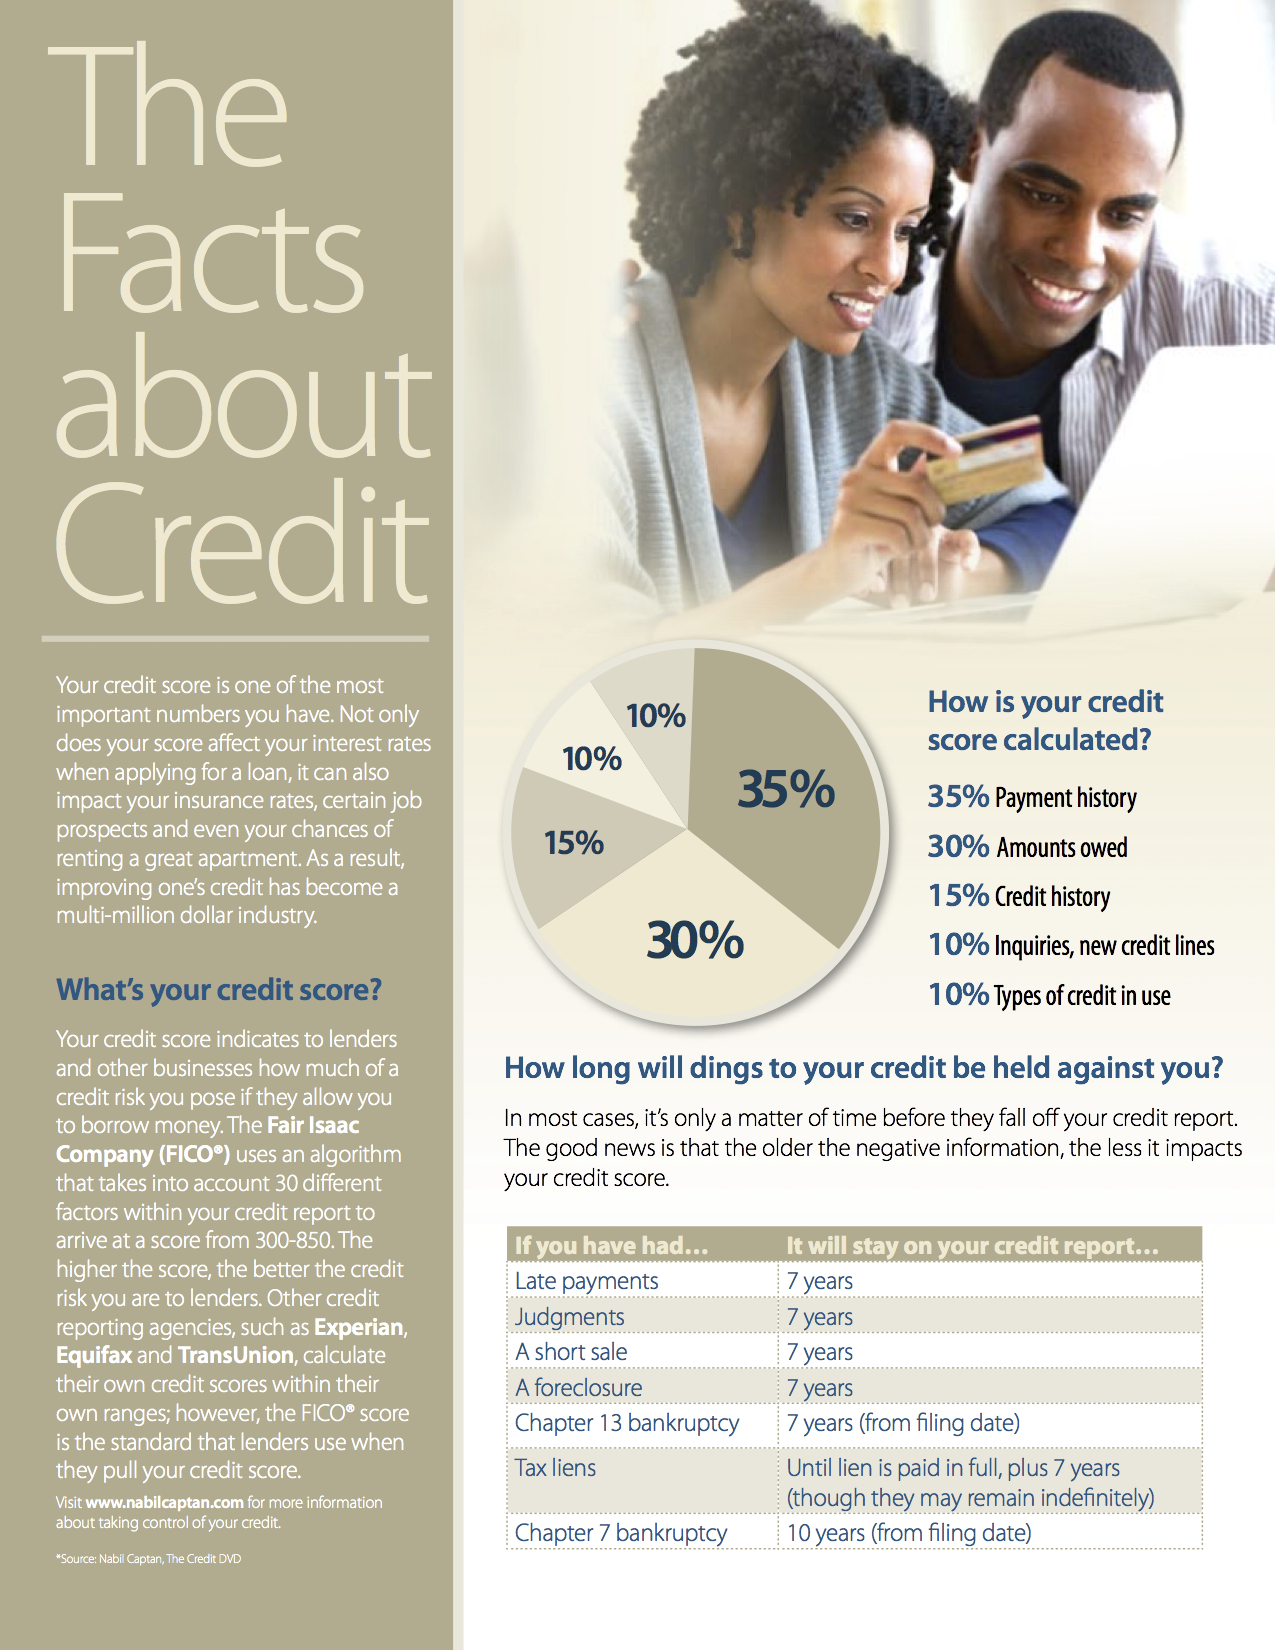 The Facts about Credit